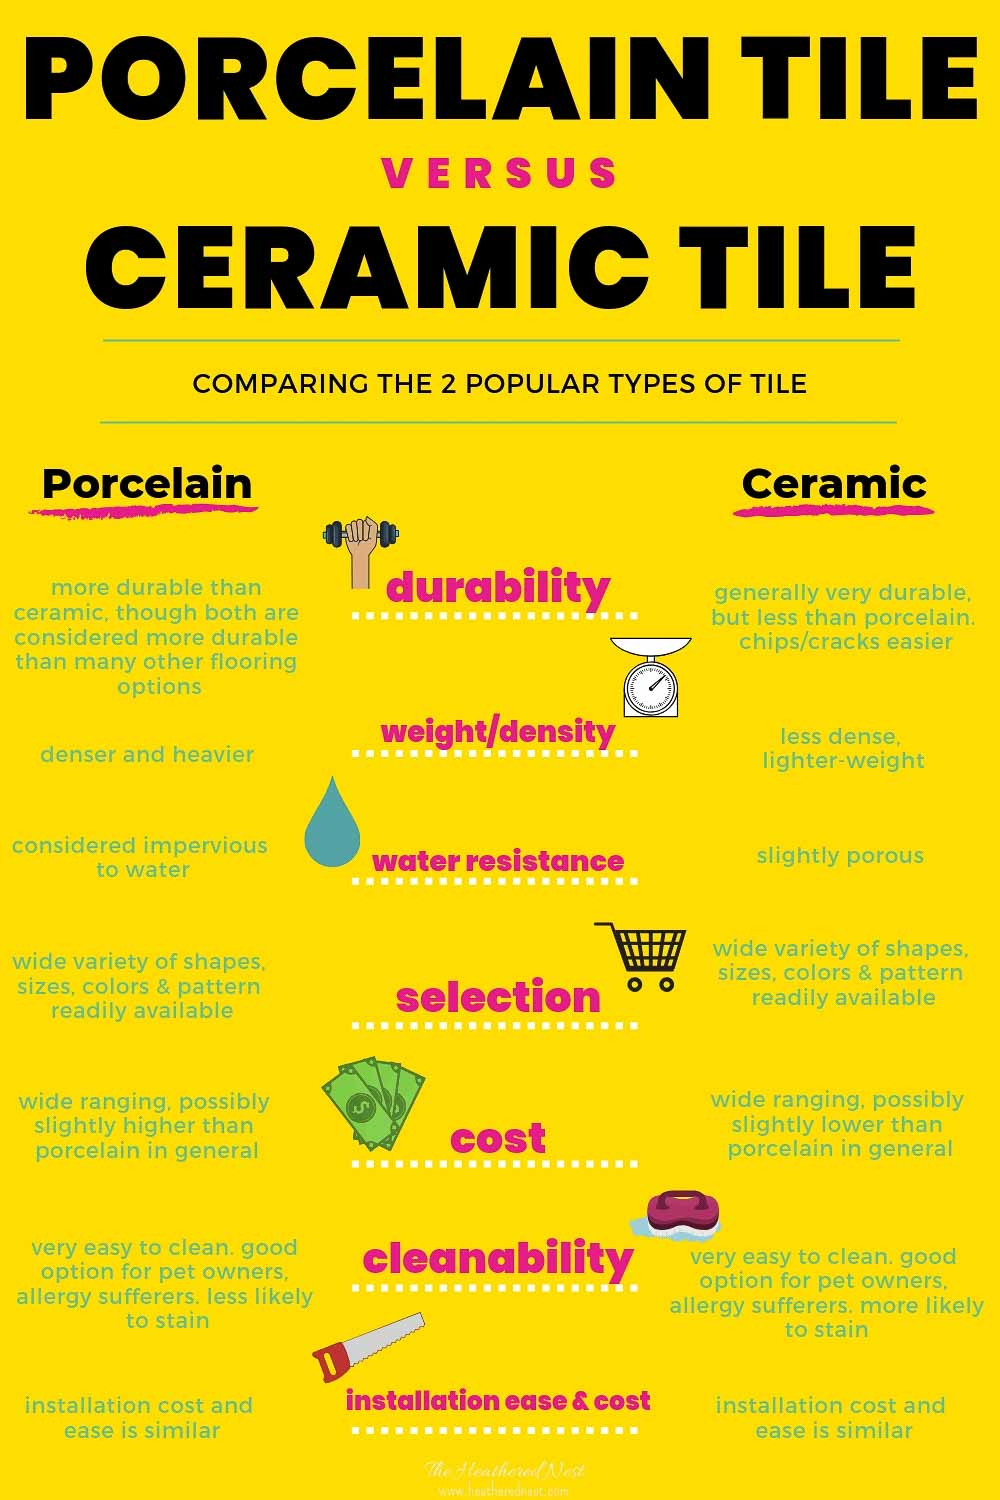 comparing and contrasting porcelain and ceramic tile - which faux wood tile type is the best for you in your home as far as durability, cost, cleanability, assortment, weight/density and installation go? This infographic explains #woodtile #woodlooktile #fauxwoodtile #porcelainorceramictile #tilereview #flooring #tile #tilefloor #tileshowerideas #bathroomtile #woodlooktilefloor #porcelainwoodtile #ceramicwoodtile #woodtileflooring